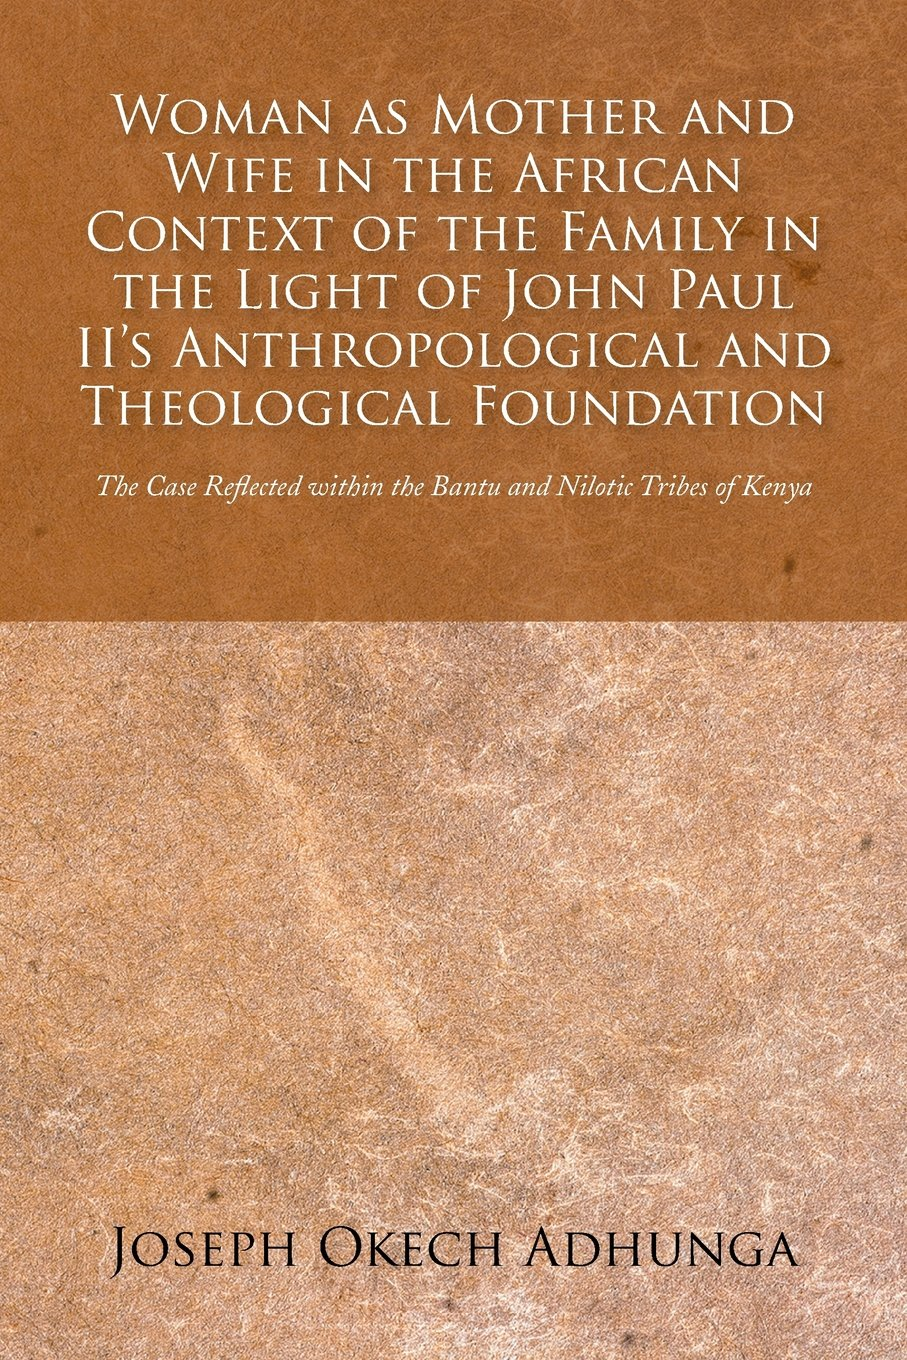 Woman as Mother and Wife in the African Context of the Family in the Light of John Paul II's Anthropological and Theological Foundation: The Case Reflected within the Bantu and Nilotic Tribes of Kenya PDF